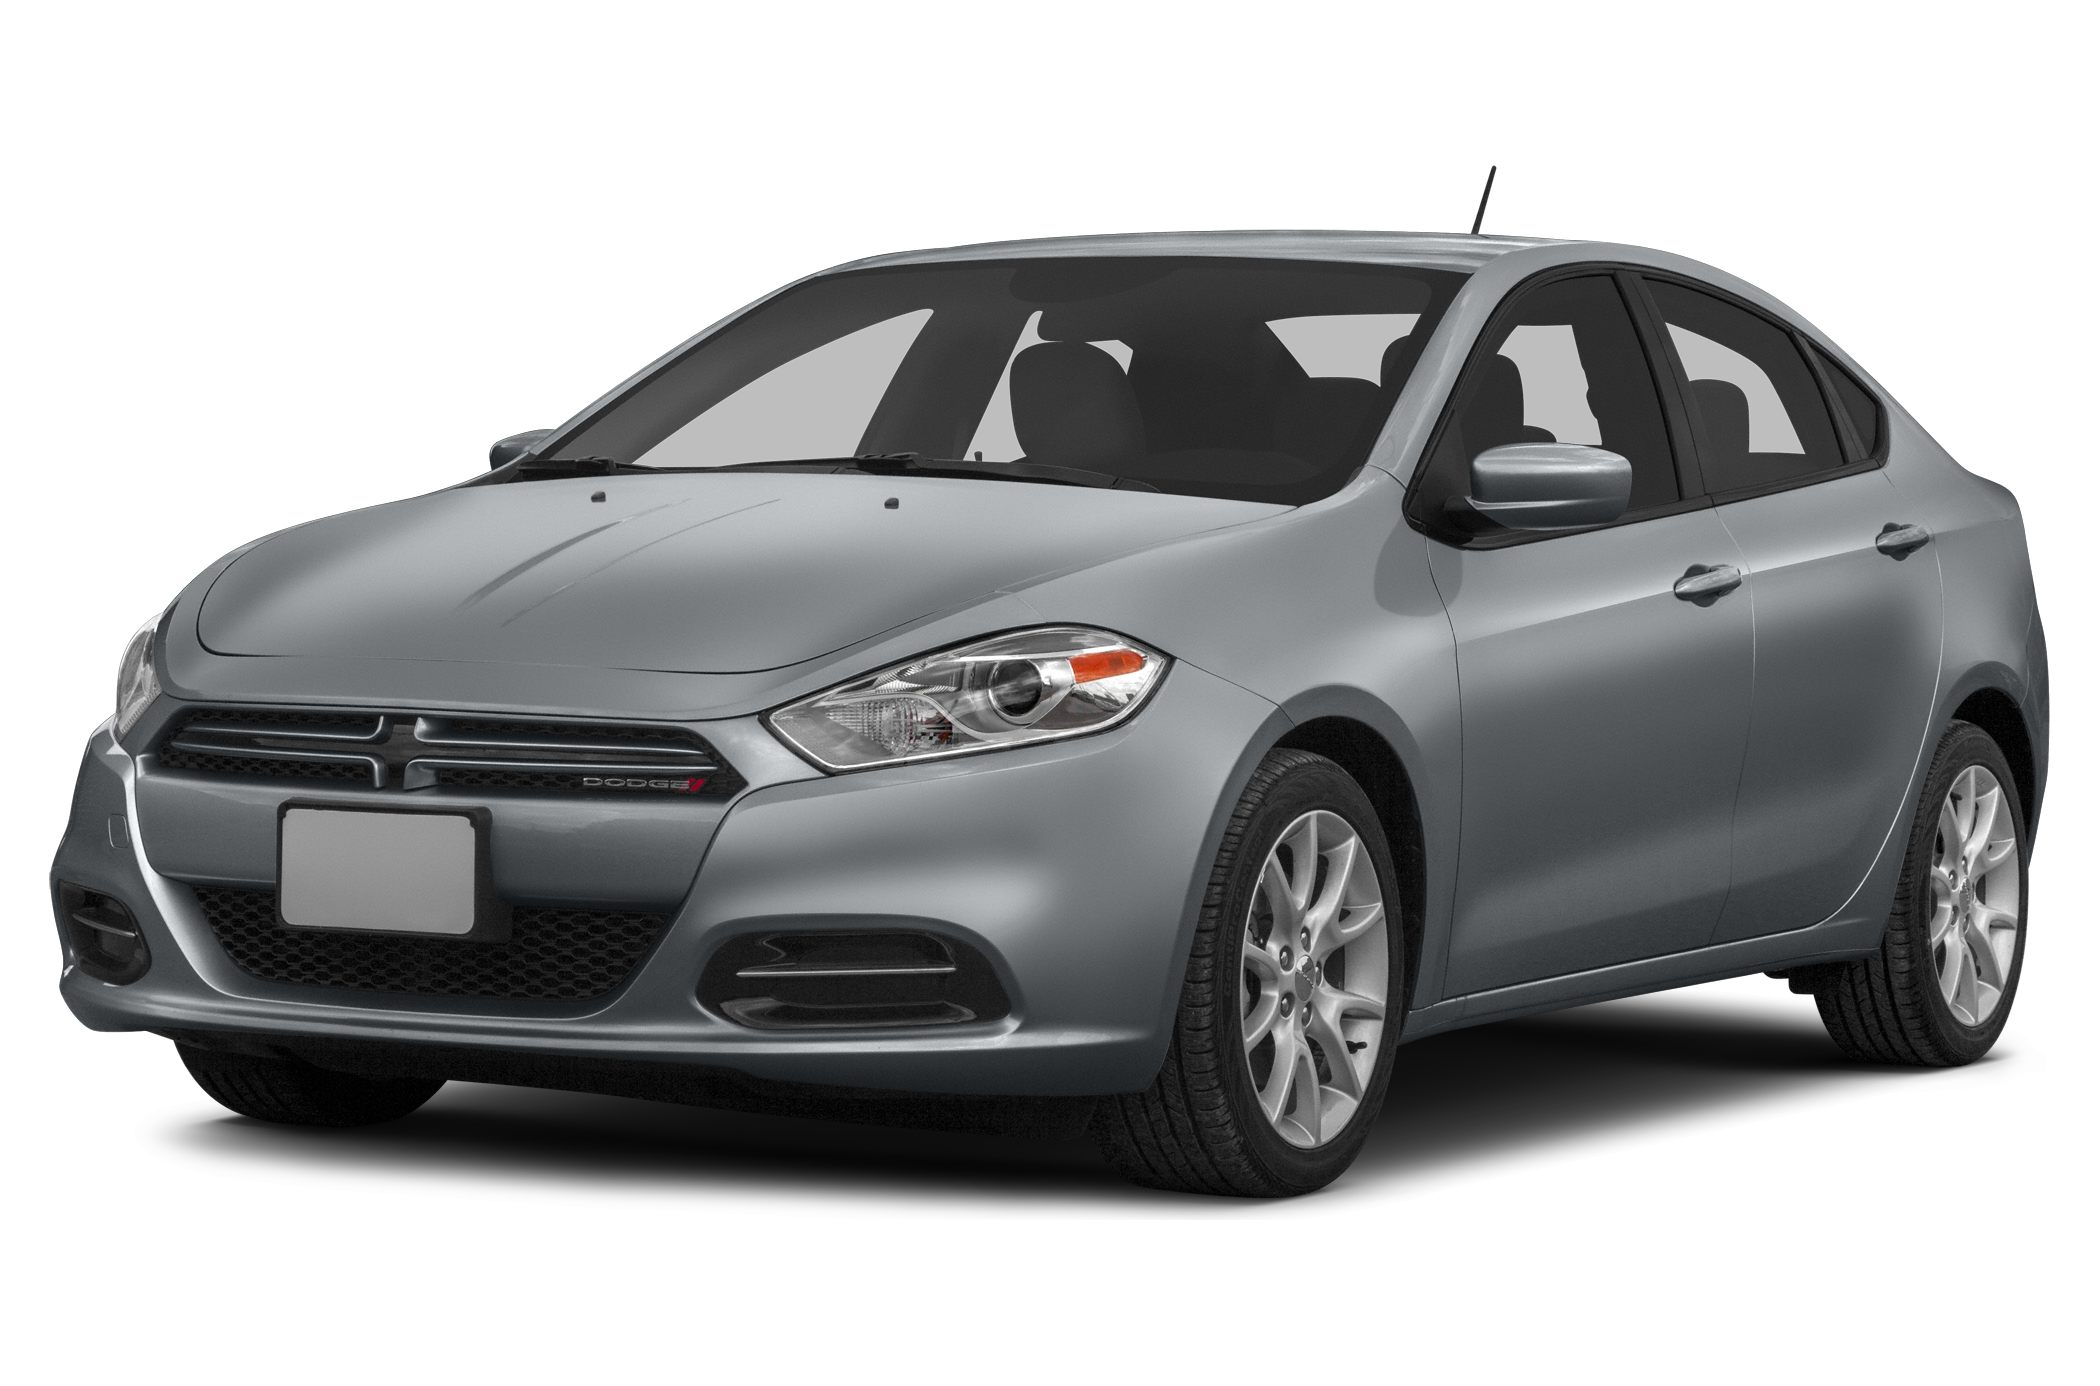 2015 Dodge Dart SXT Sedan for sale in Grants Pass for $22,325 with 4 miles.